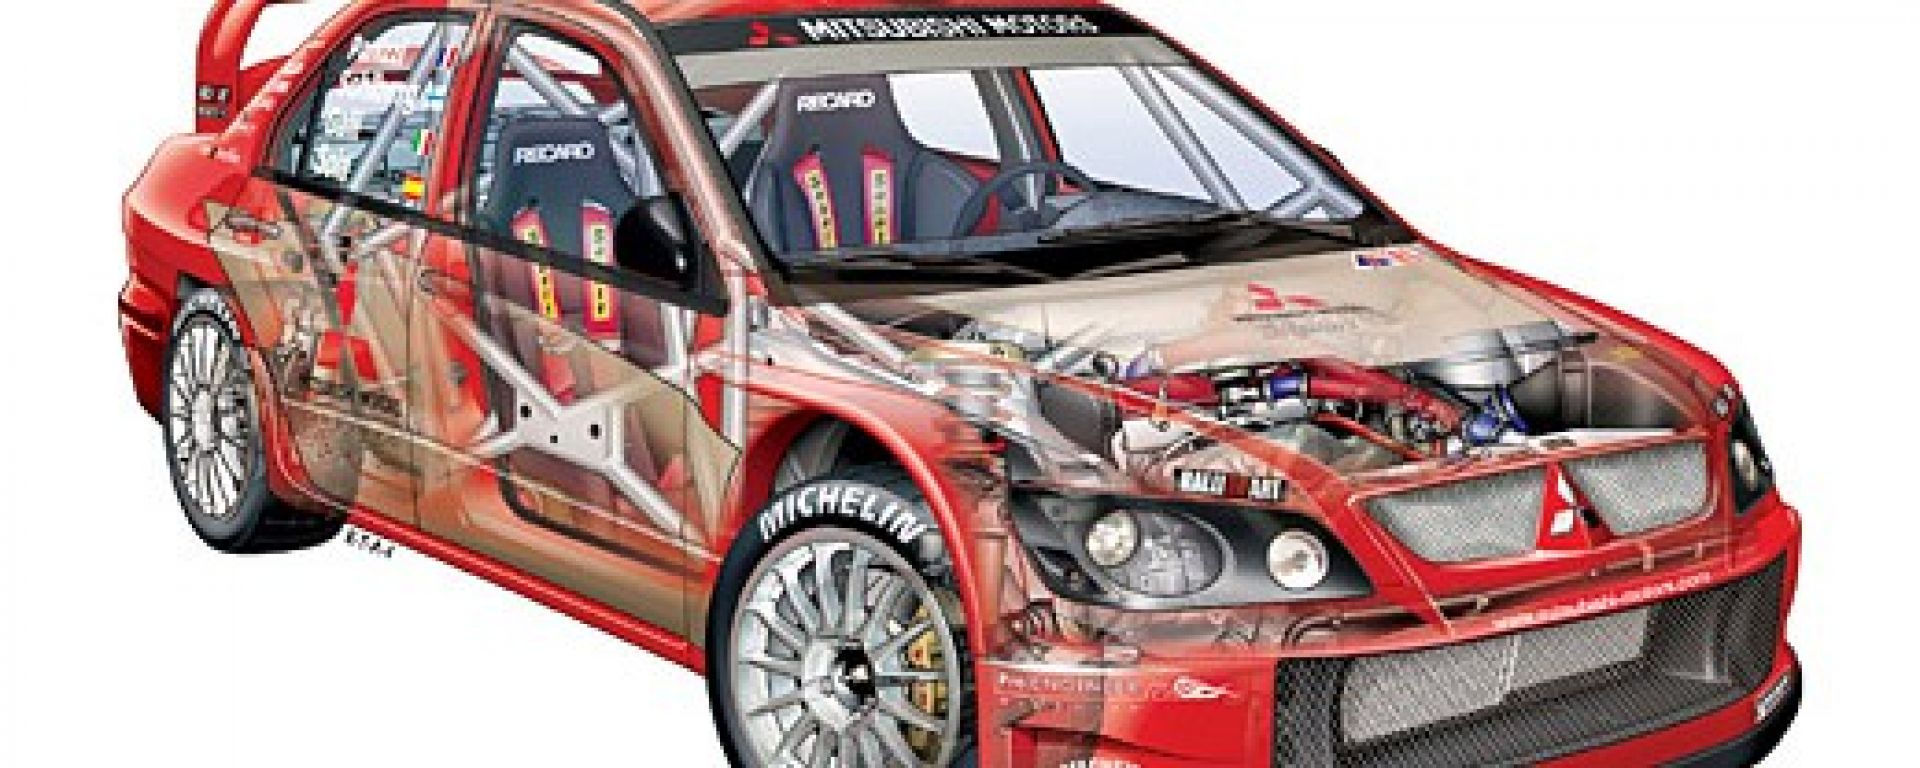 Mondiale Rally 2004: le protagoniste